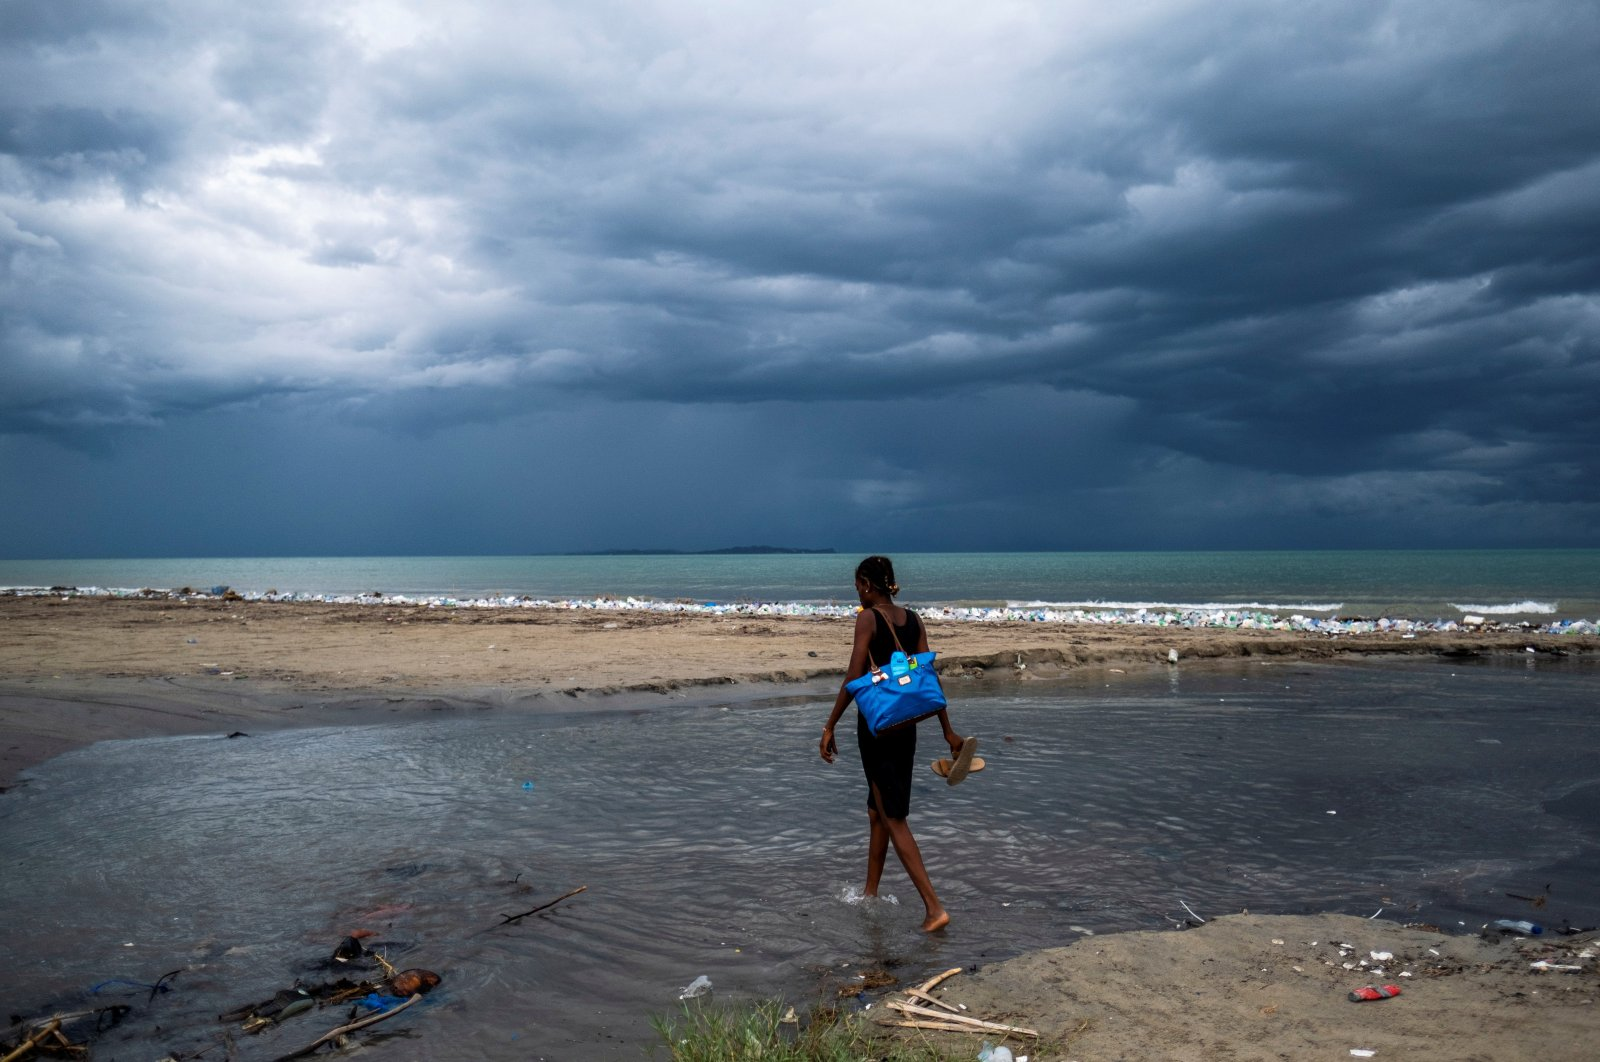 A woman wades through water as Tropical Depression Grace approaches, in Les Cayes, Haiti, Aug. 16, 2021. (Reuters Photo)